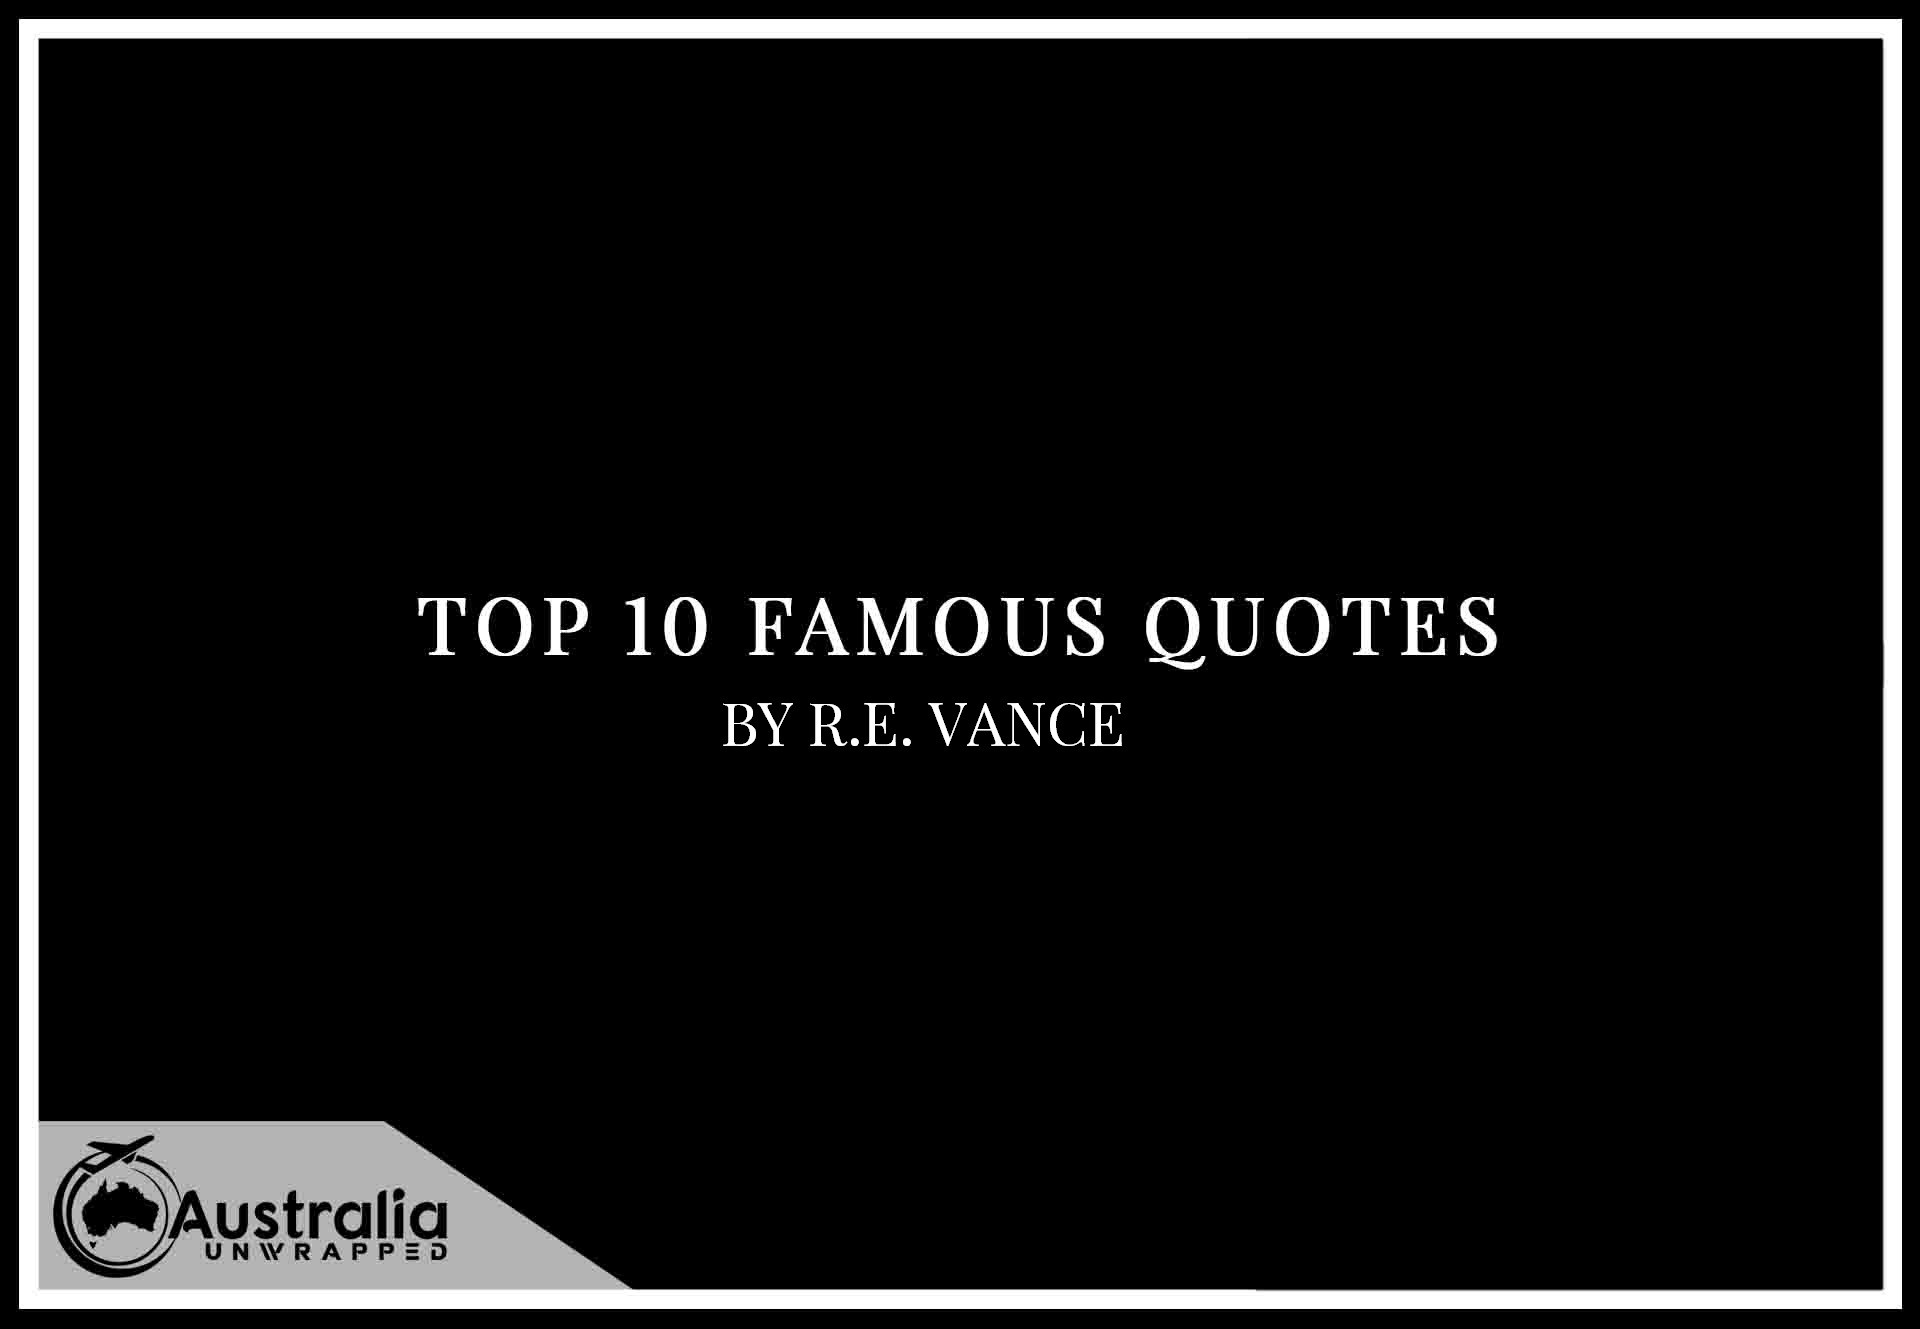 Top 10 Famous Quotes by Author R.E. Vance